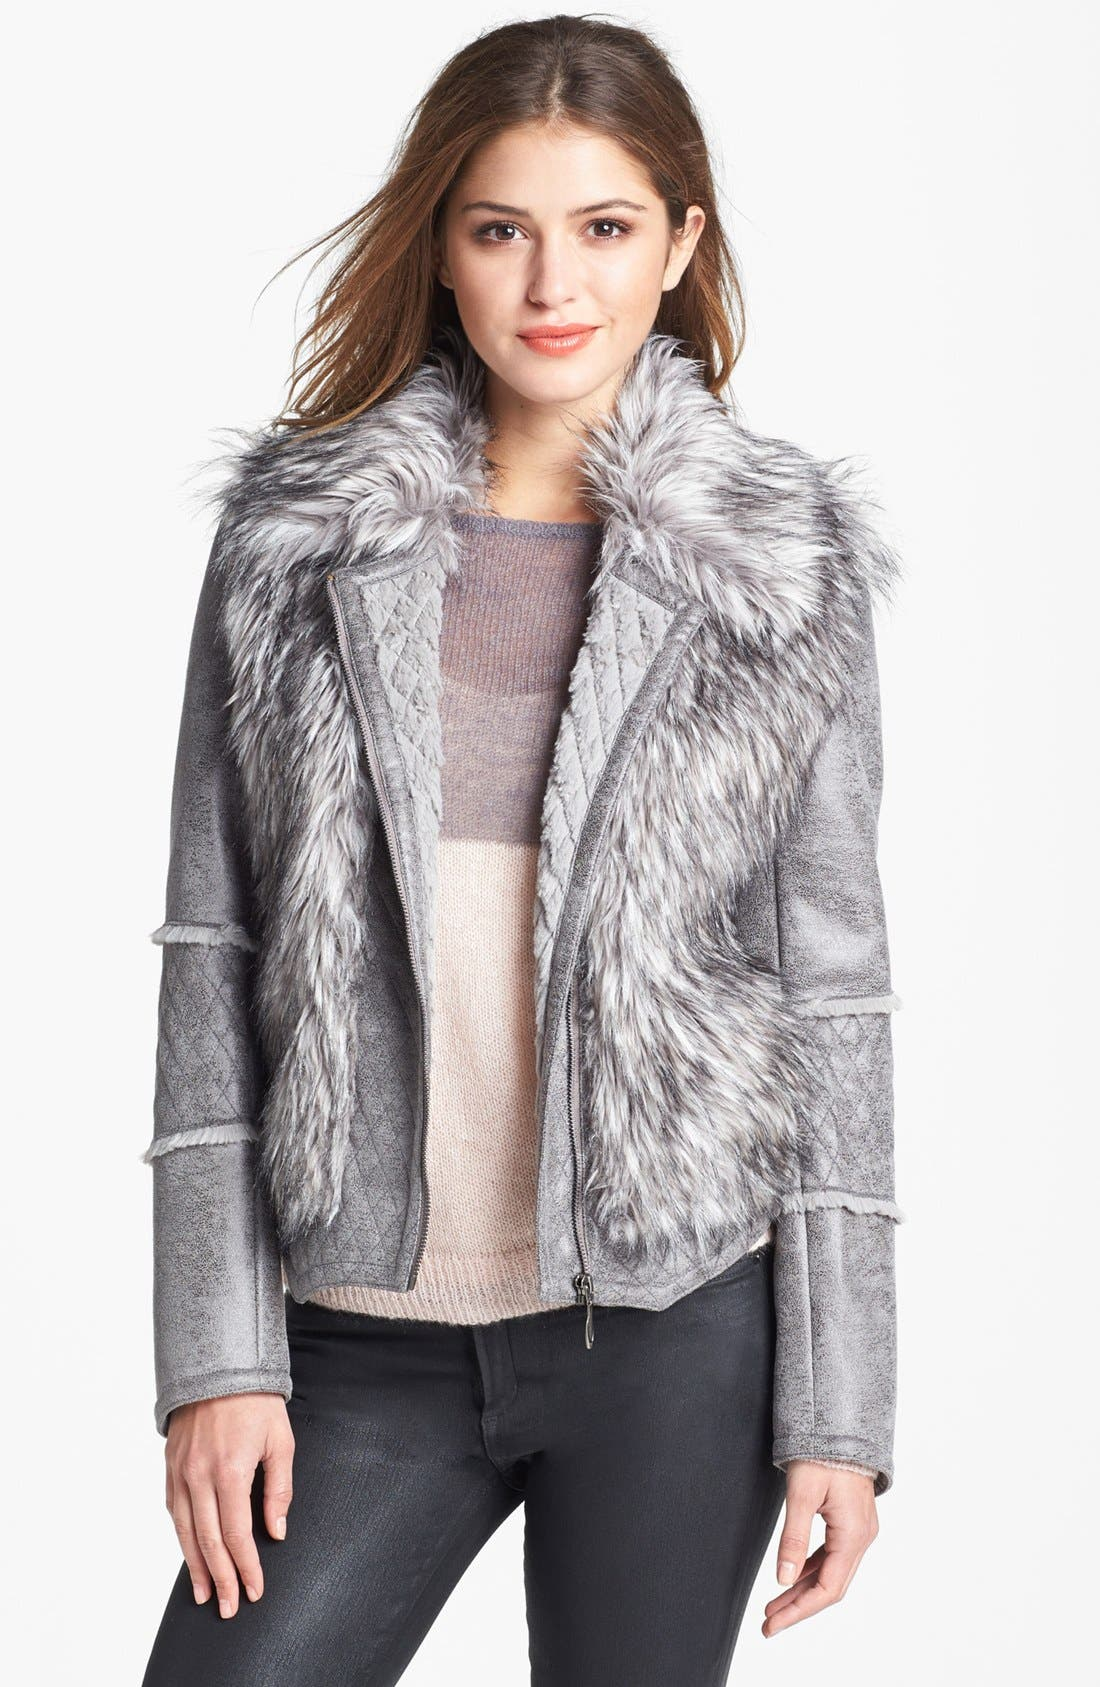 Alternate Image 1 Selected - Kristen Blake Faux Shearling & Faux Fur Moto Jacket (Nordstrom Exclusive)